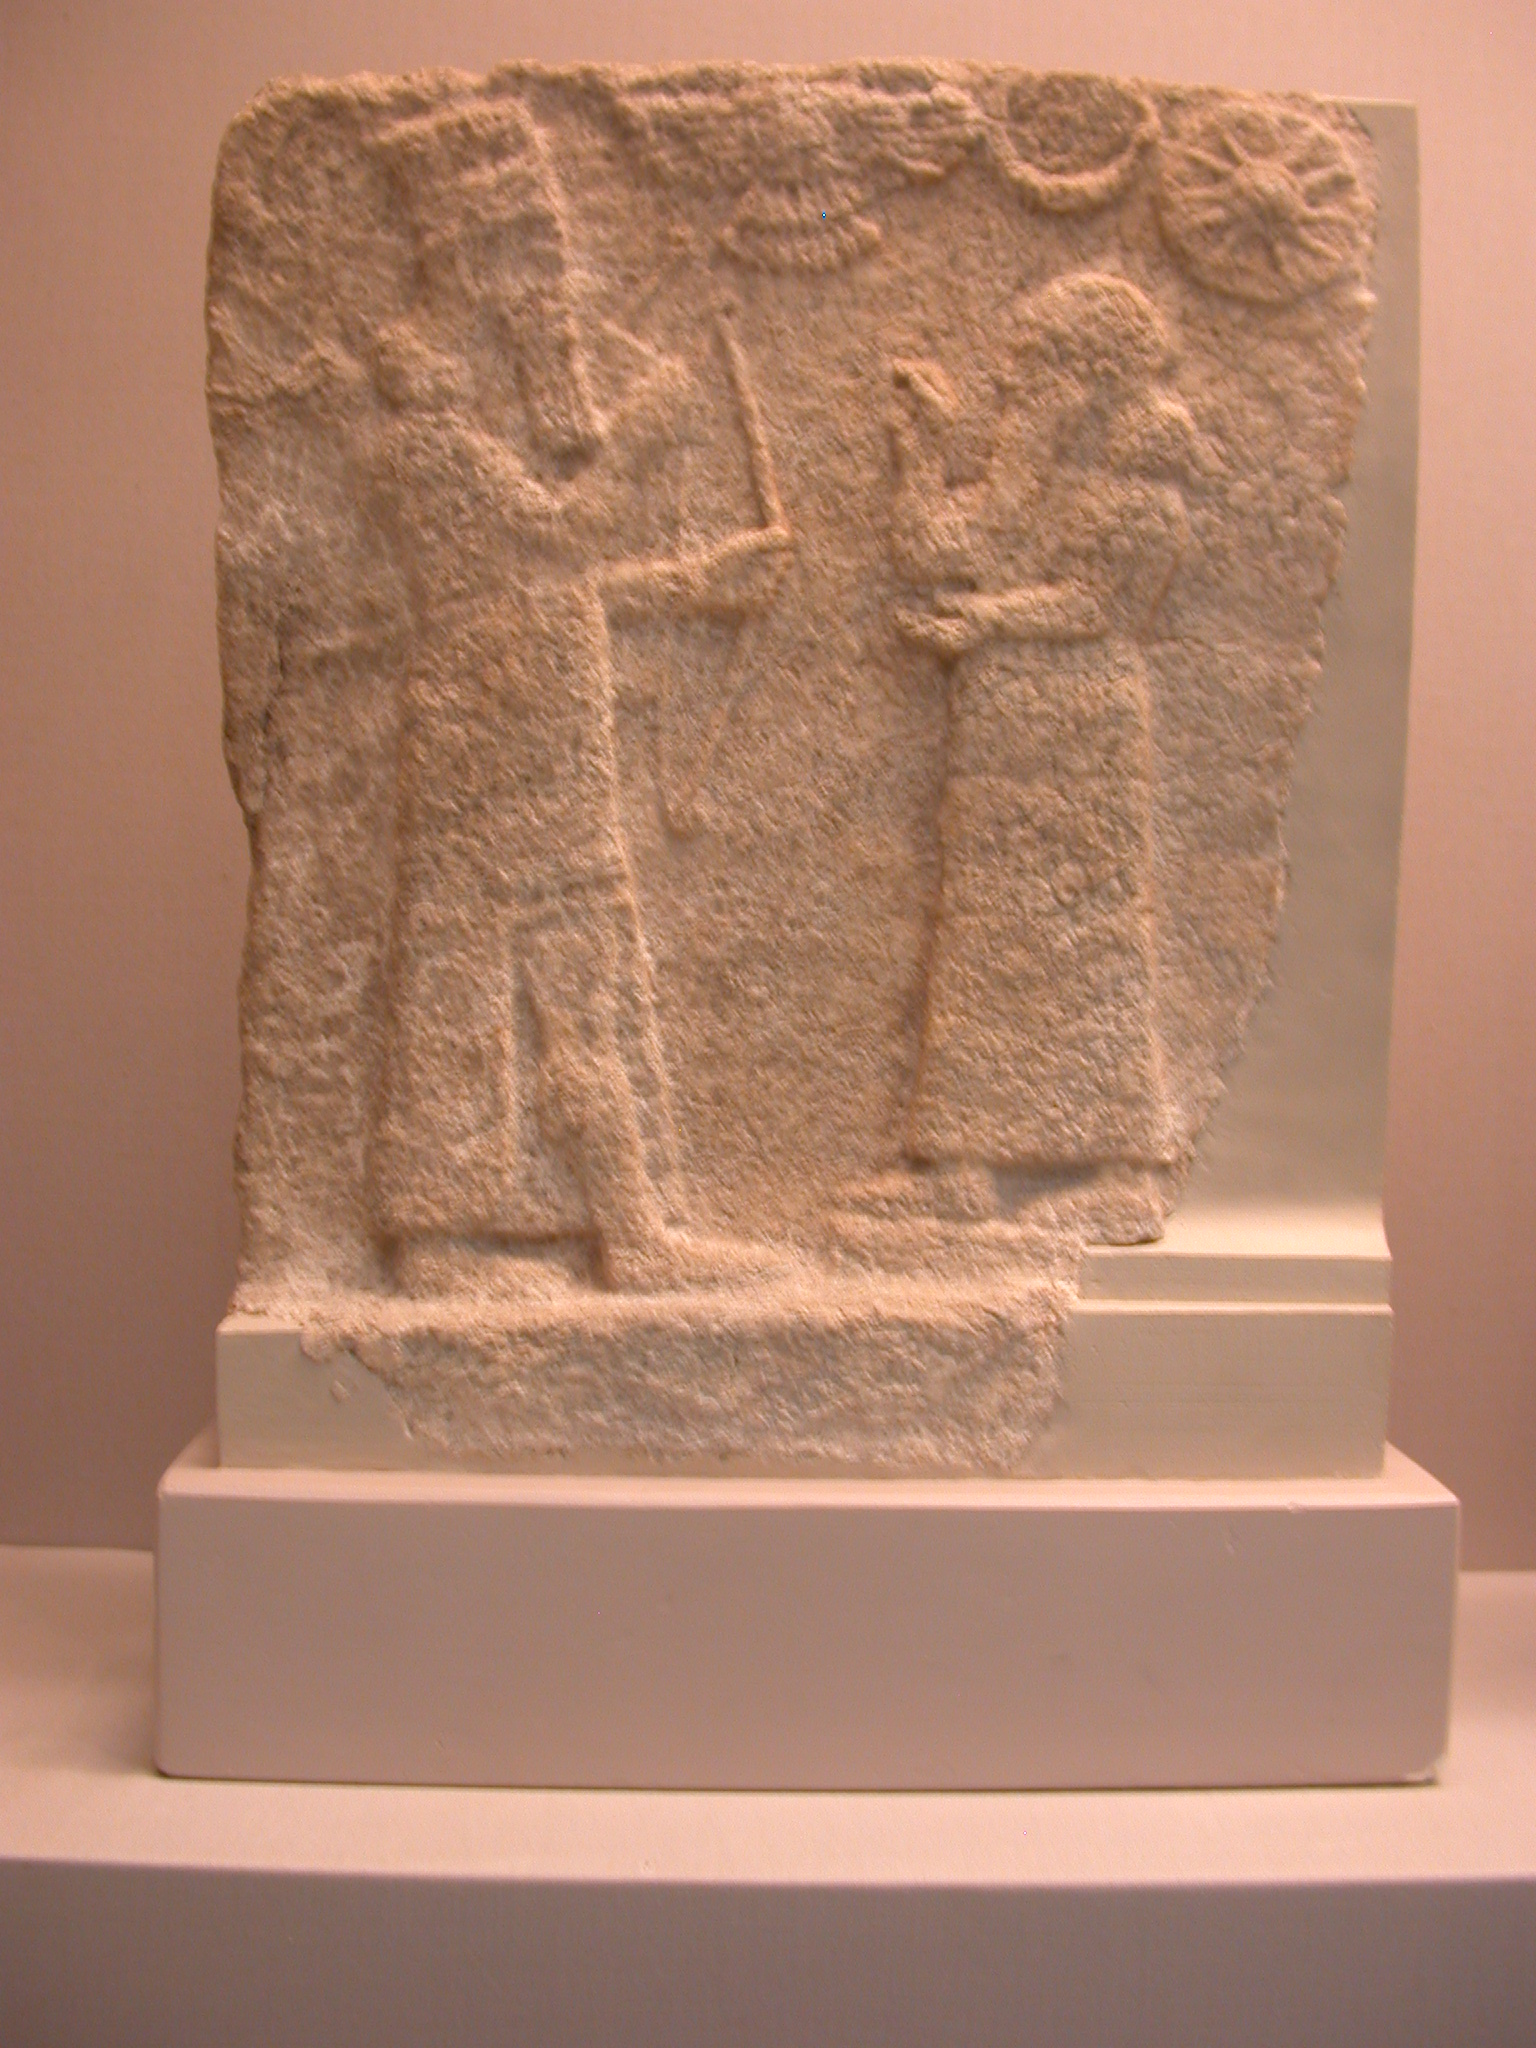 Assyrian in Court Dress Worshipping Shrine, Perhaps Ninurta, Domestic Shrine Tile, Gypsum, About 800-700 BCE, Ashur, Assyria, in British Museum, London, England